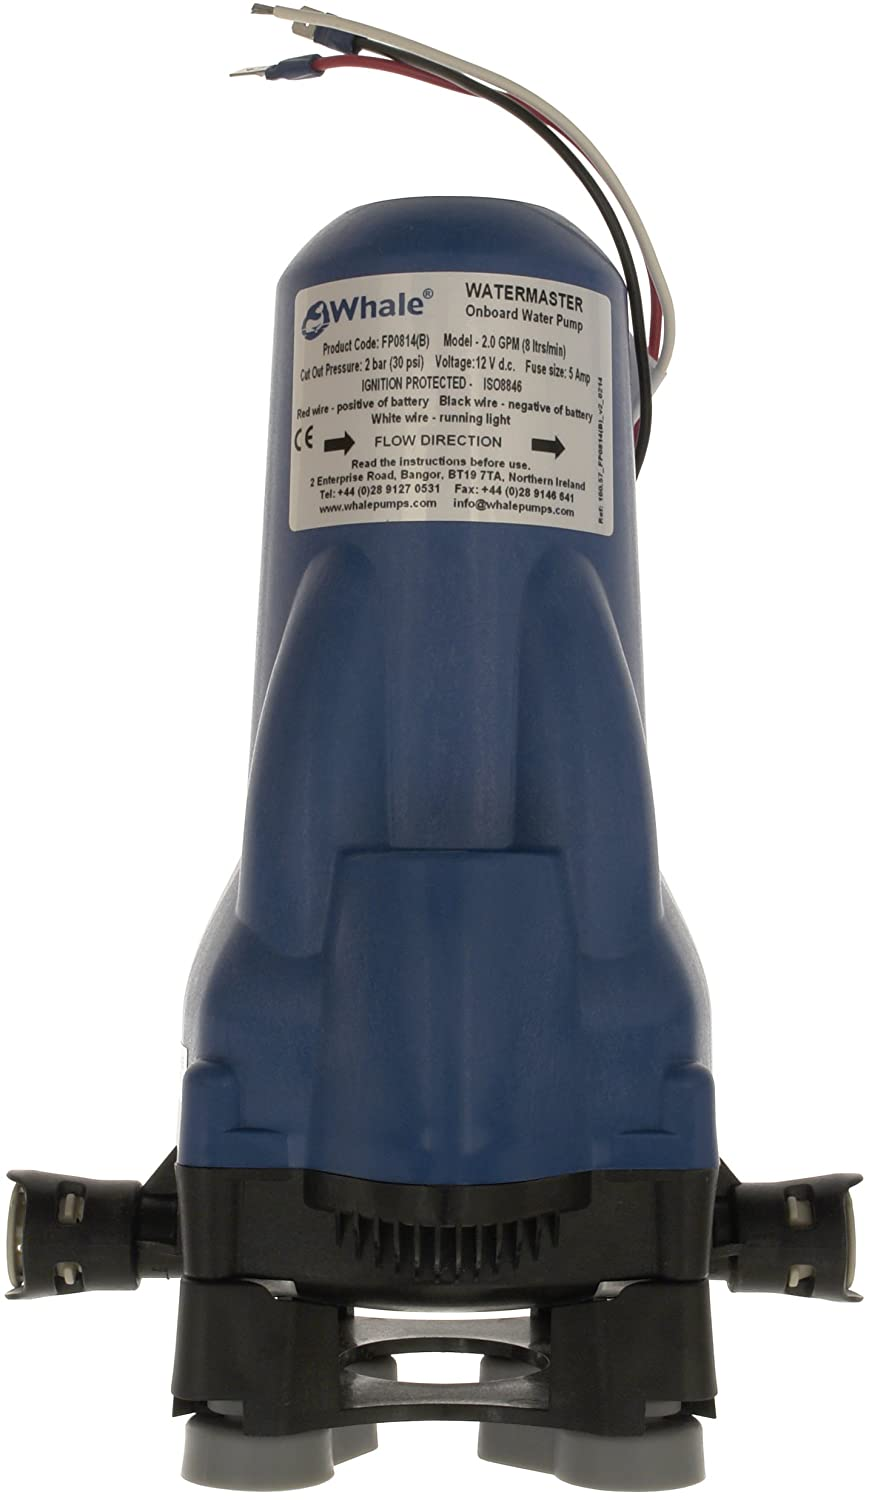 Whale Water Master 12V Water Pump - Blue FP0814B